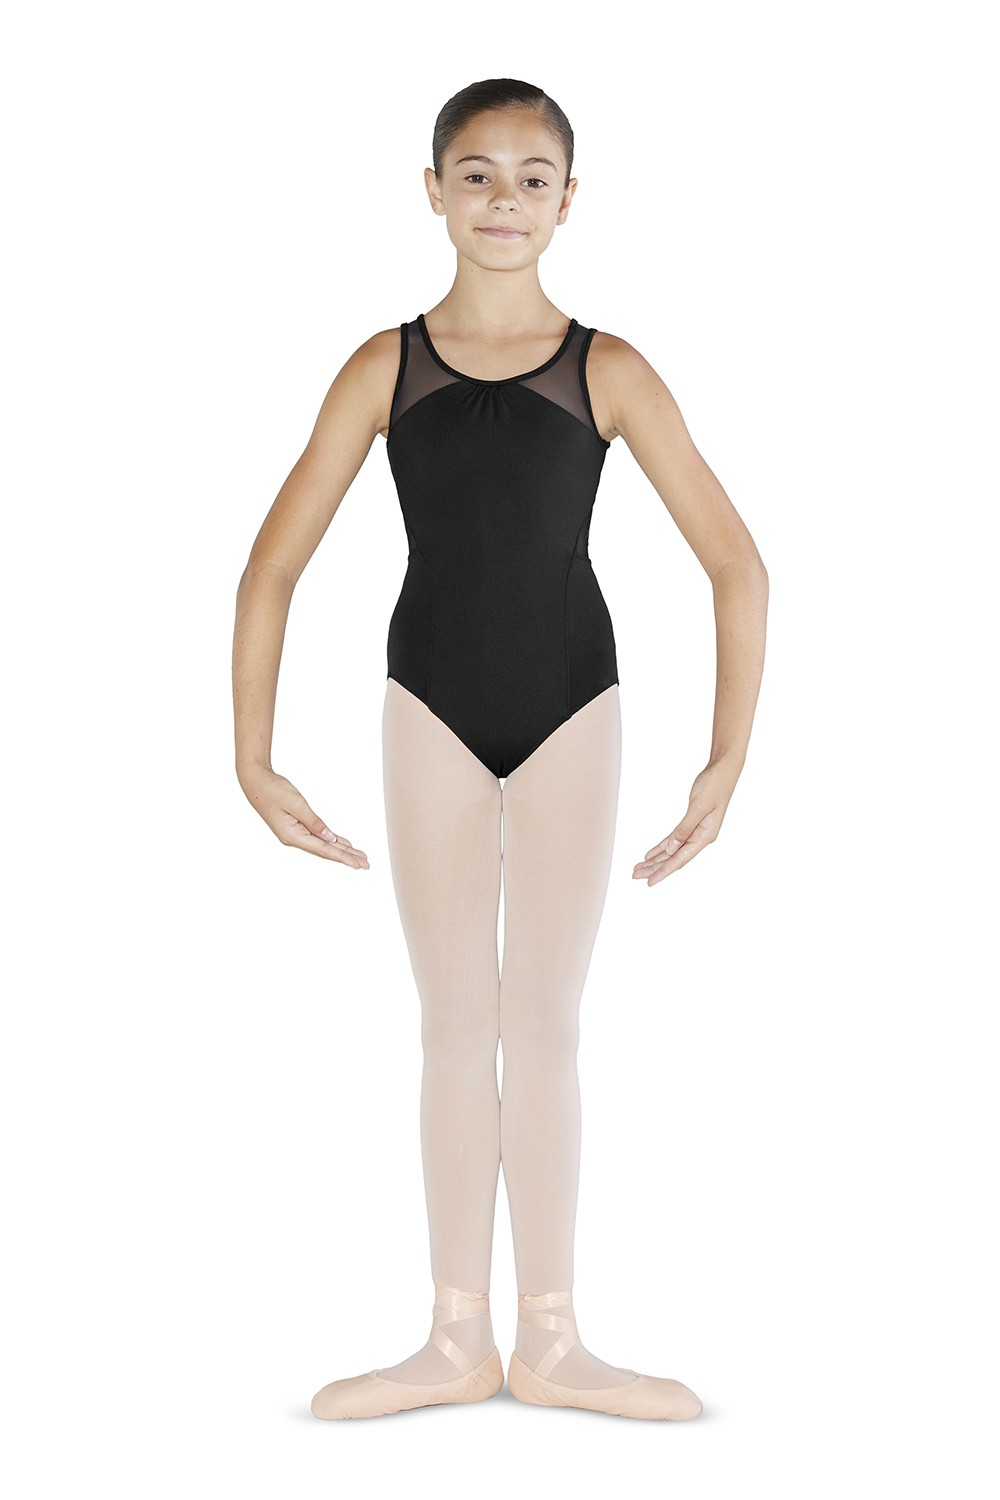 f2088acd3f2e5 Stunning Children's Ballet & Dance Leotards - BLOCH® US Store